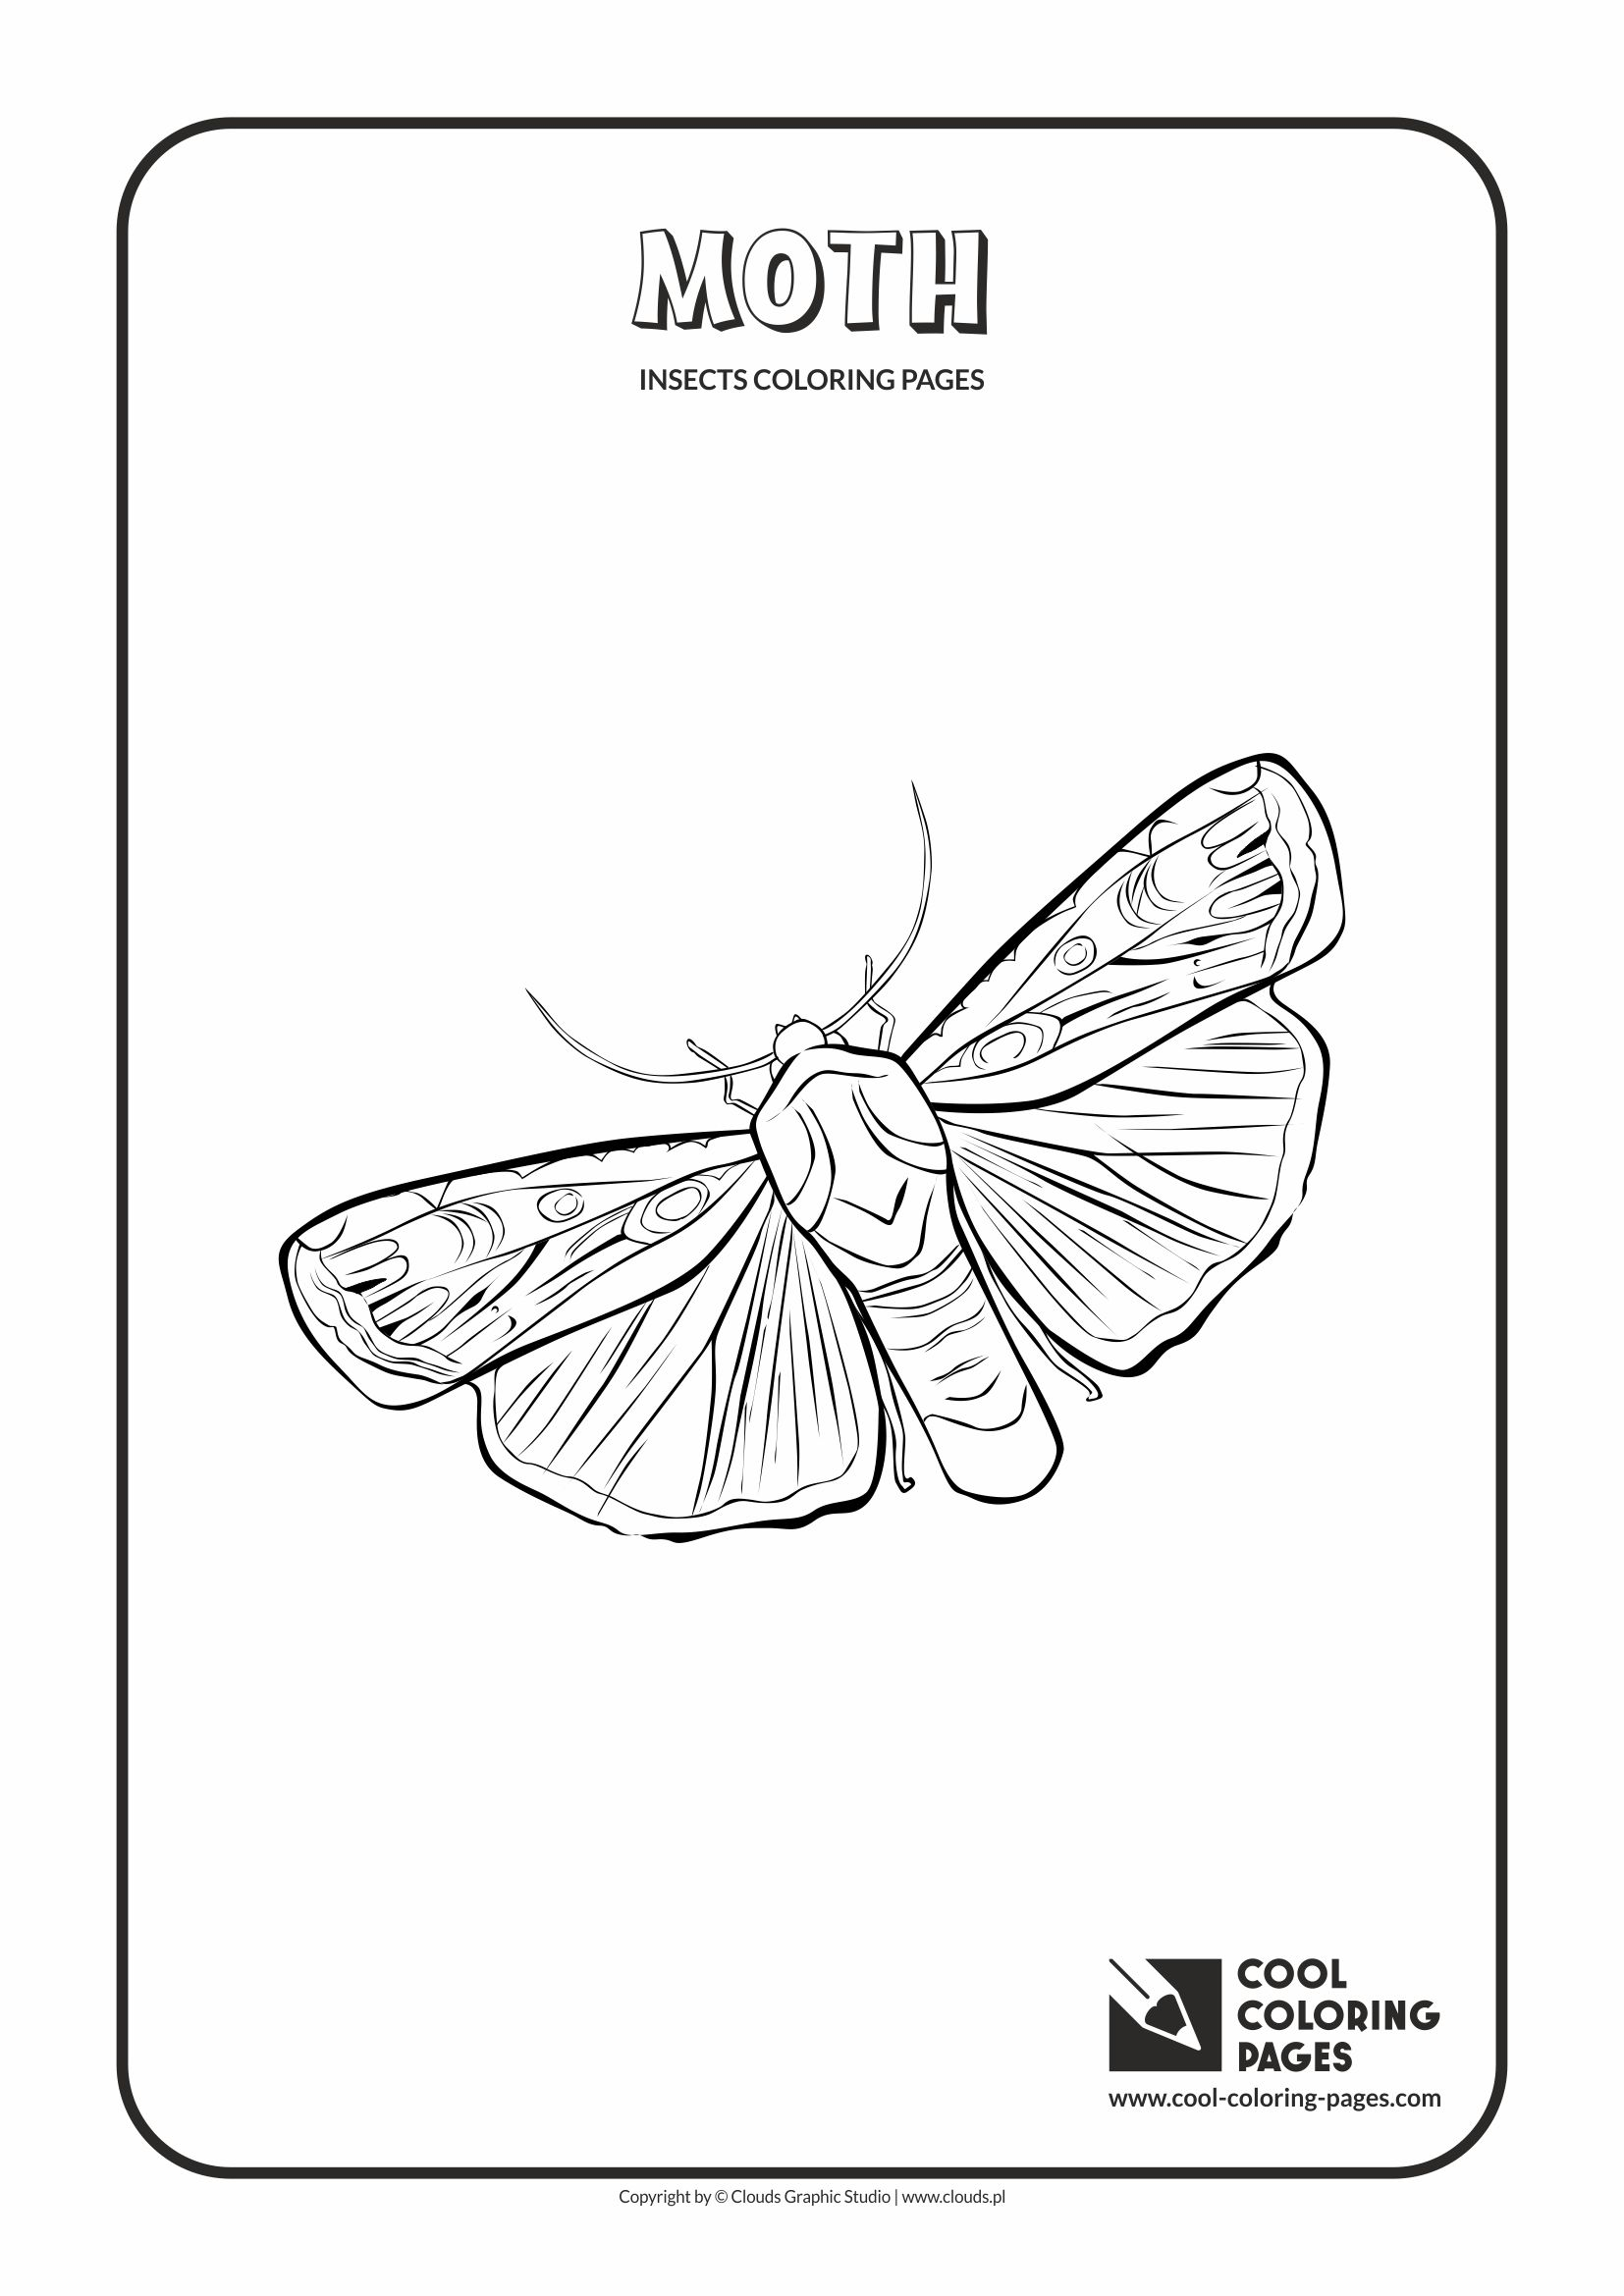 cool coloring pages animals moth coloring page with moth